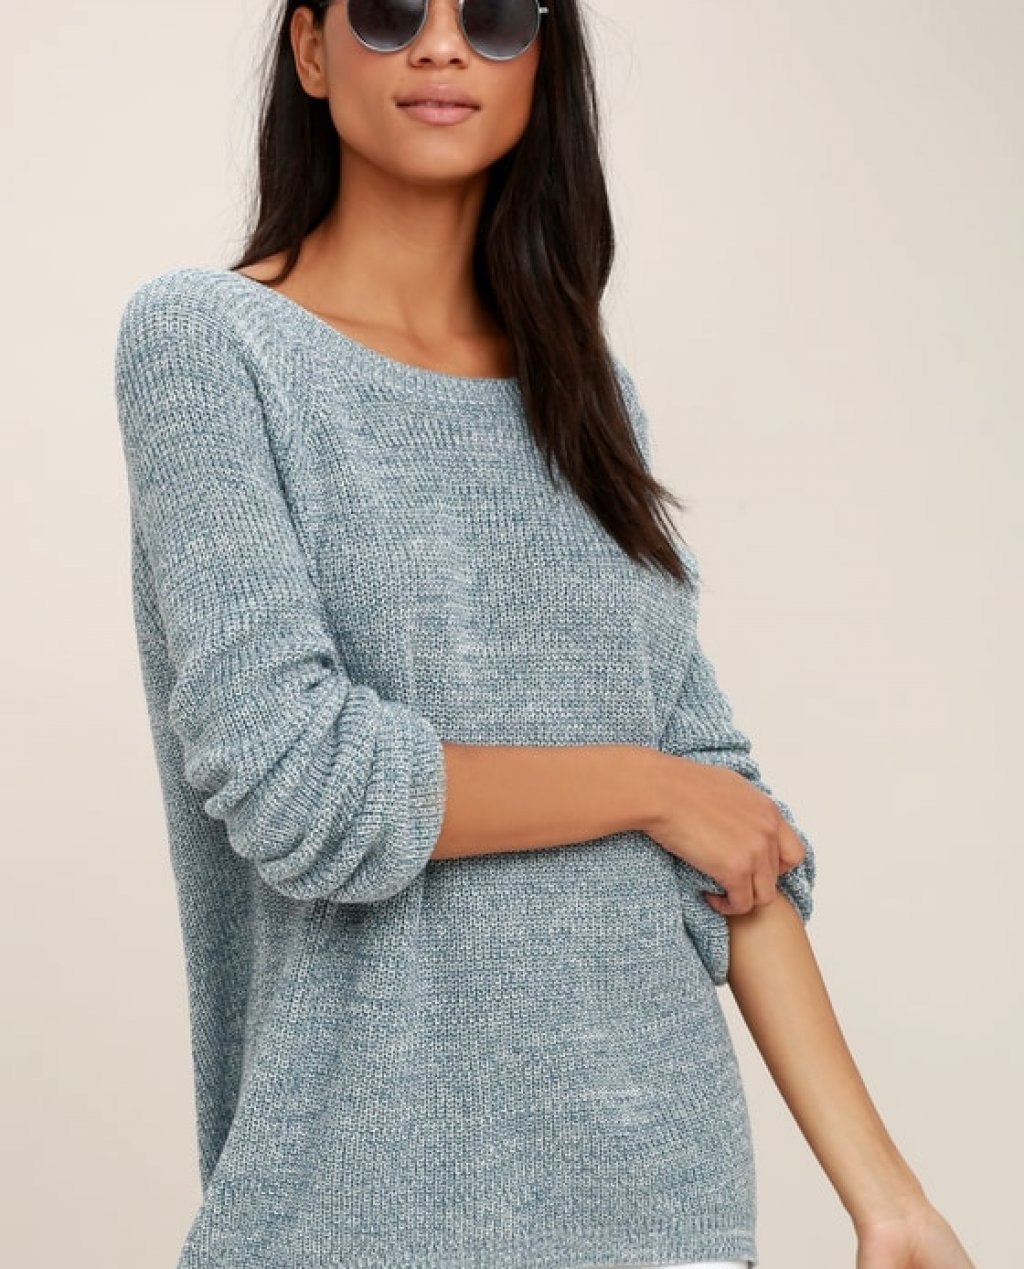 Pursuit of Happiness Heather Blue Backless Sweater